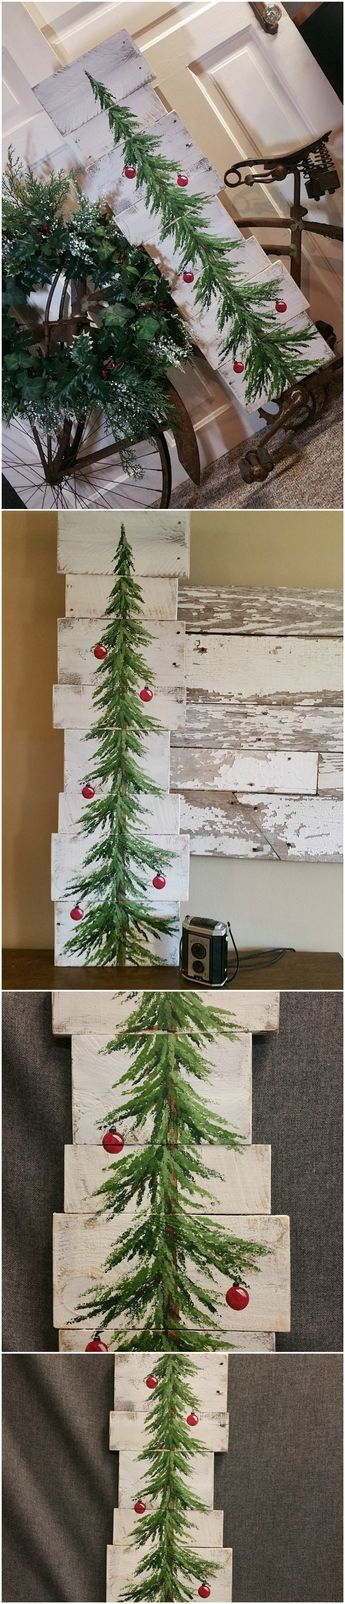 """White washed, Red bulbs, Christmas Pine tree Reclaimed Wood Pallet Art, Christmas Hand painted, upcycled, Wall art, Distressed  Original Acrylic painting on reclaimed Pallet boards. This unique piece is 36"""" x apprx. 12""""  This Christmas tree with red bulbs on a white-washed background is perfect for a personalized rustic touch to your Christmas decorating. Perfect for that skinny wall space or just lean it against the wall."""